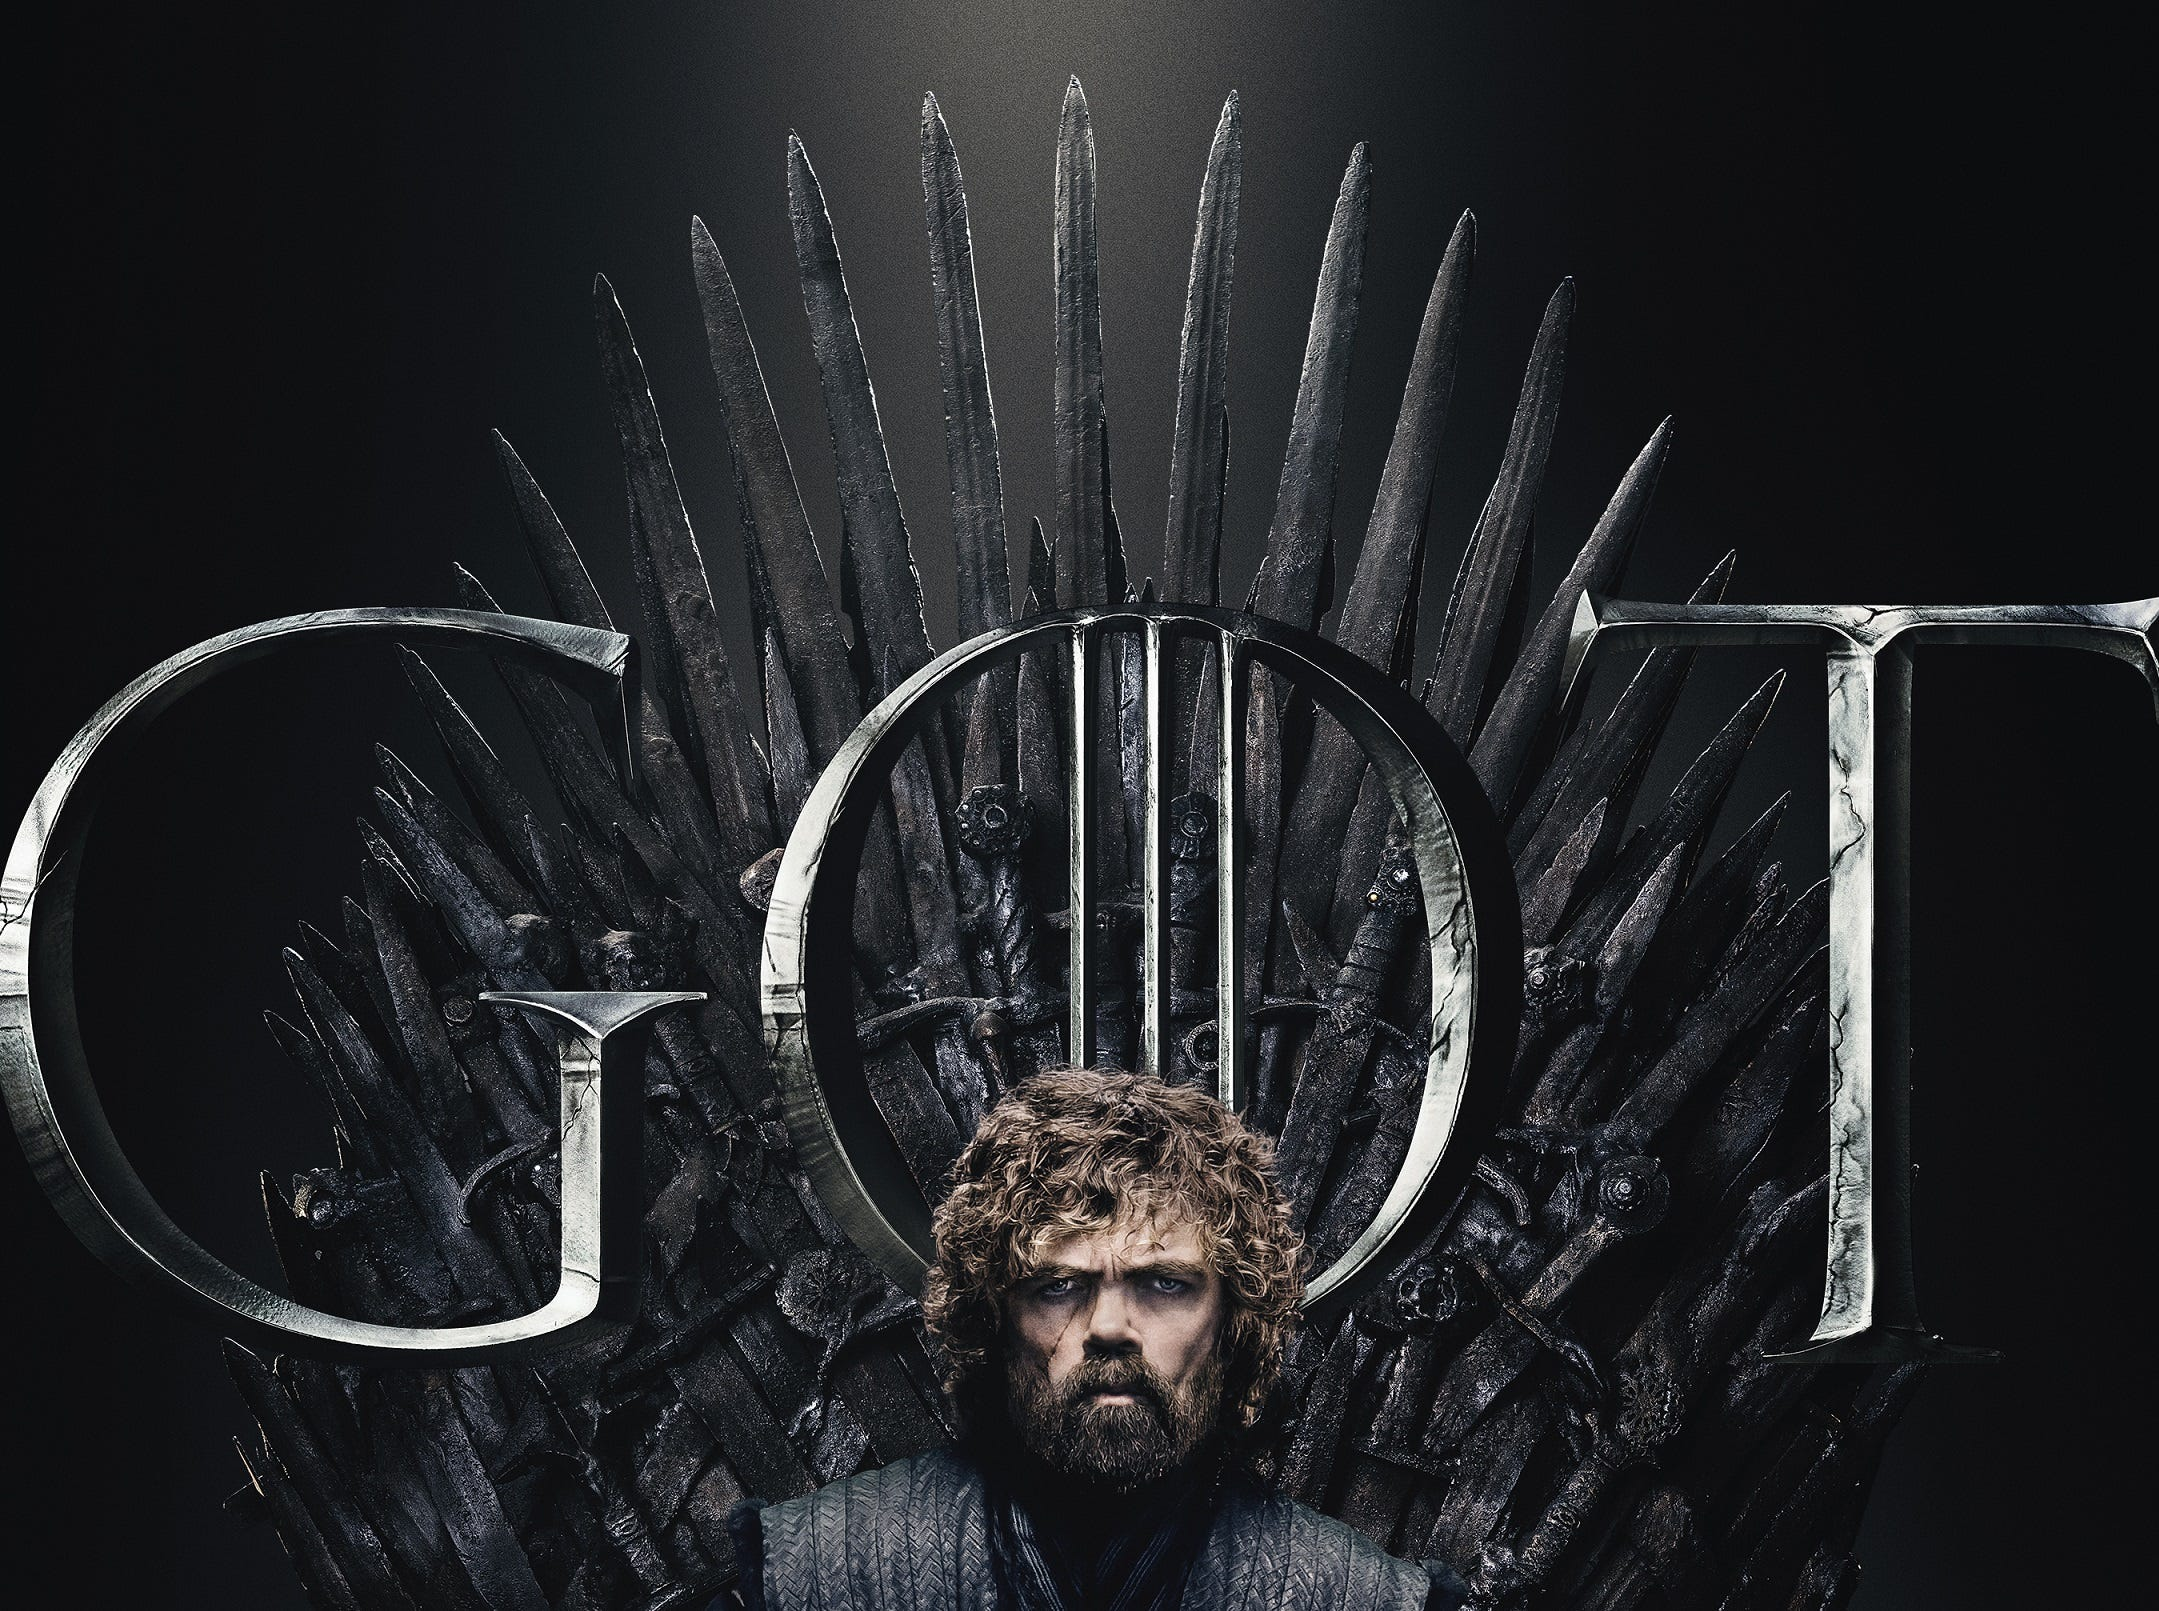 Tyrion Lannister (Peter Dinklage) might give his brother Jaime a run for his money.